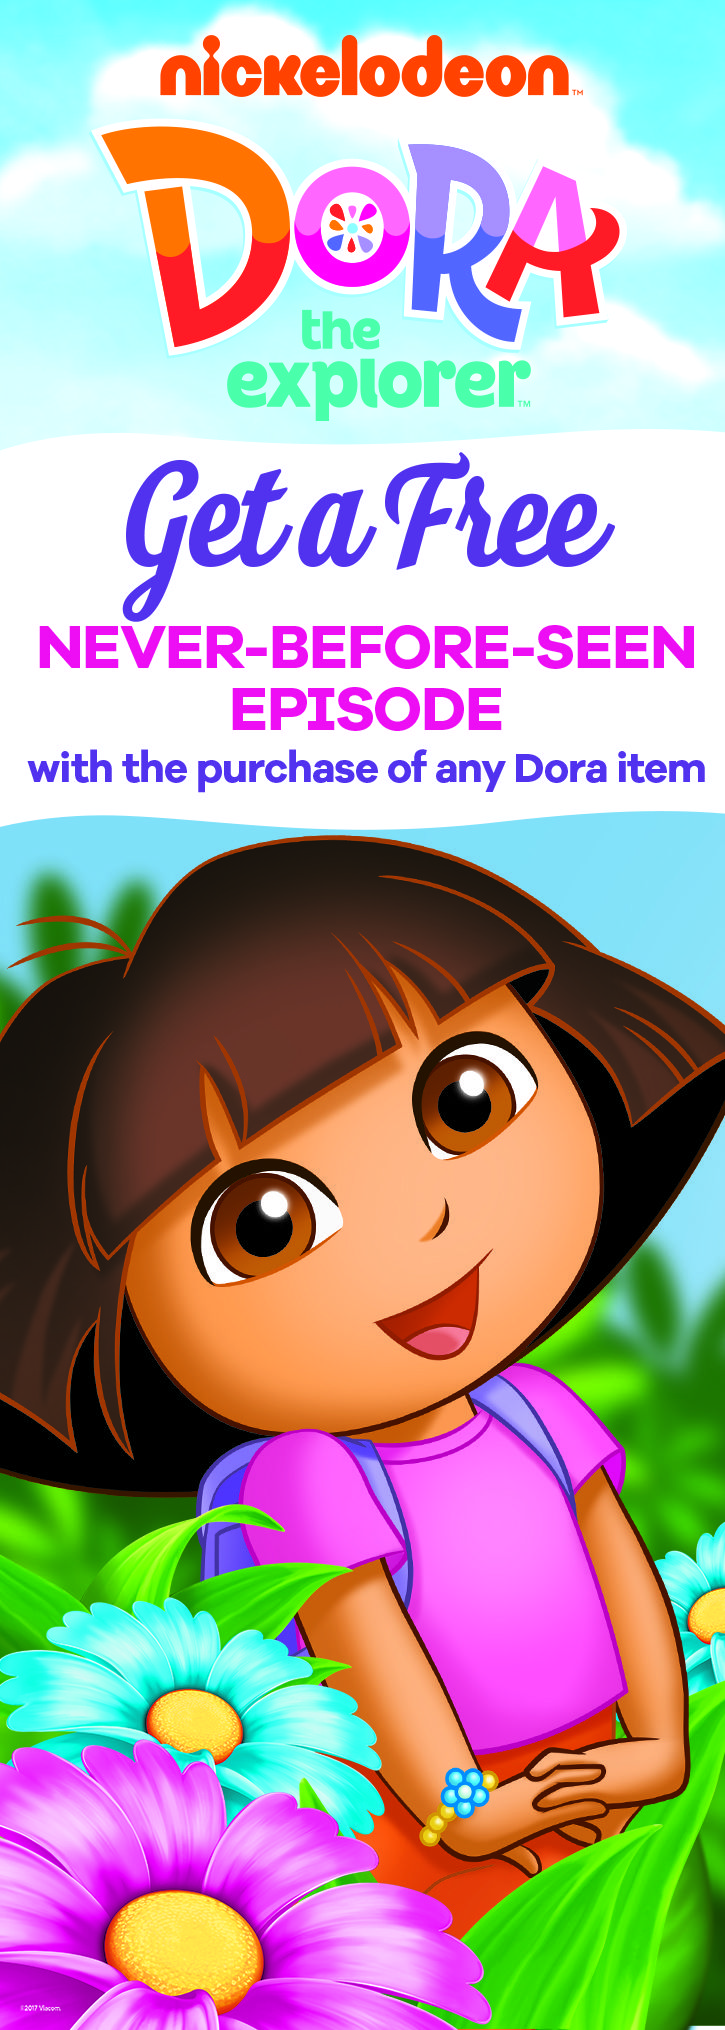 Free never-before-seen Dora the Explorer episode with the purchase of any Dora item! Check your Kmart receipt coupon for details. Available in-store and online Offer valid 8/7/17 – 9/30/17. Code for purchases made online will appear on your email receipt. Code valid through 1/31/18.